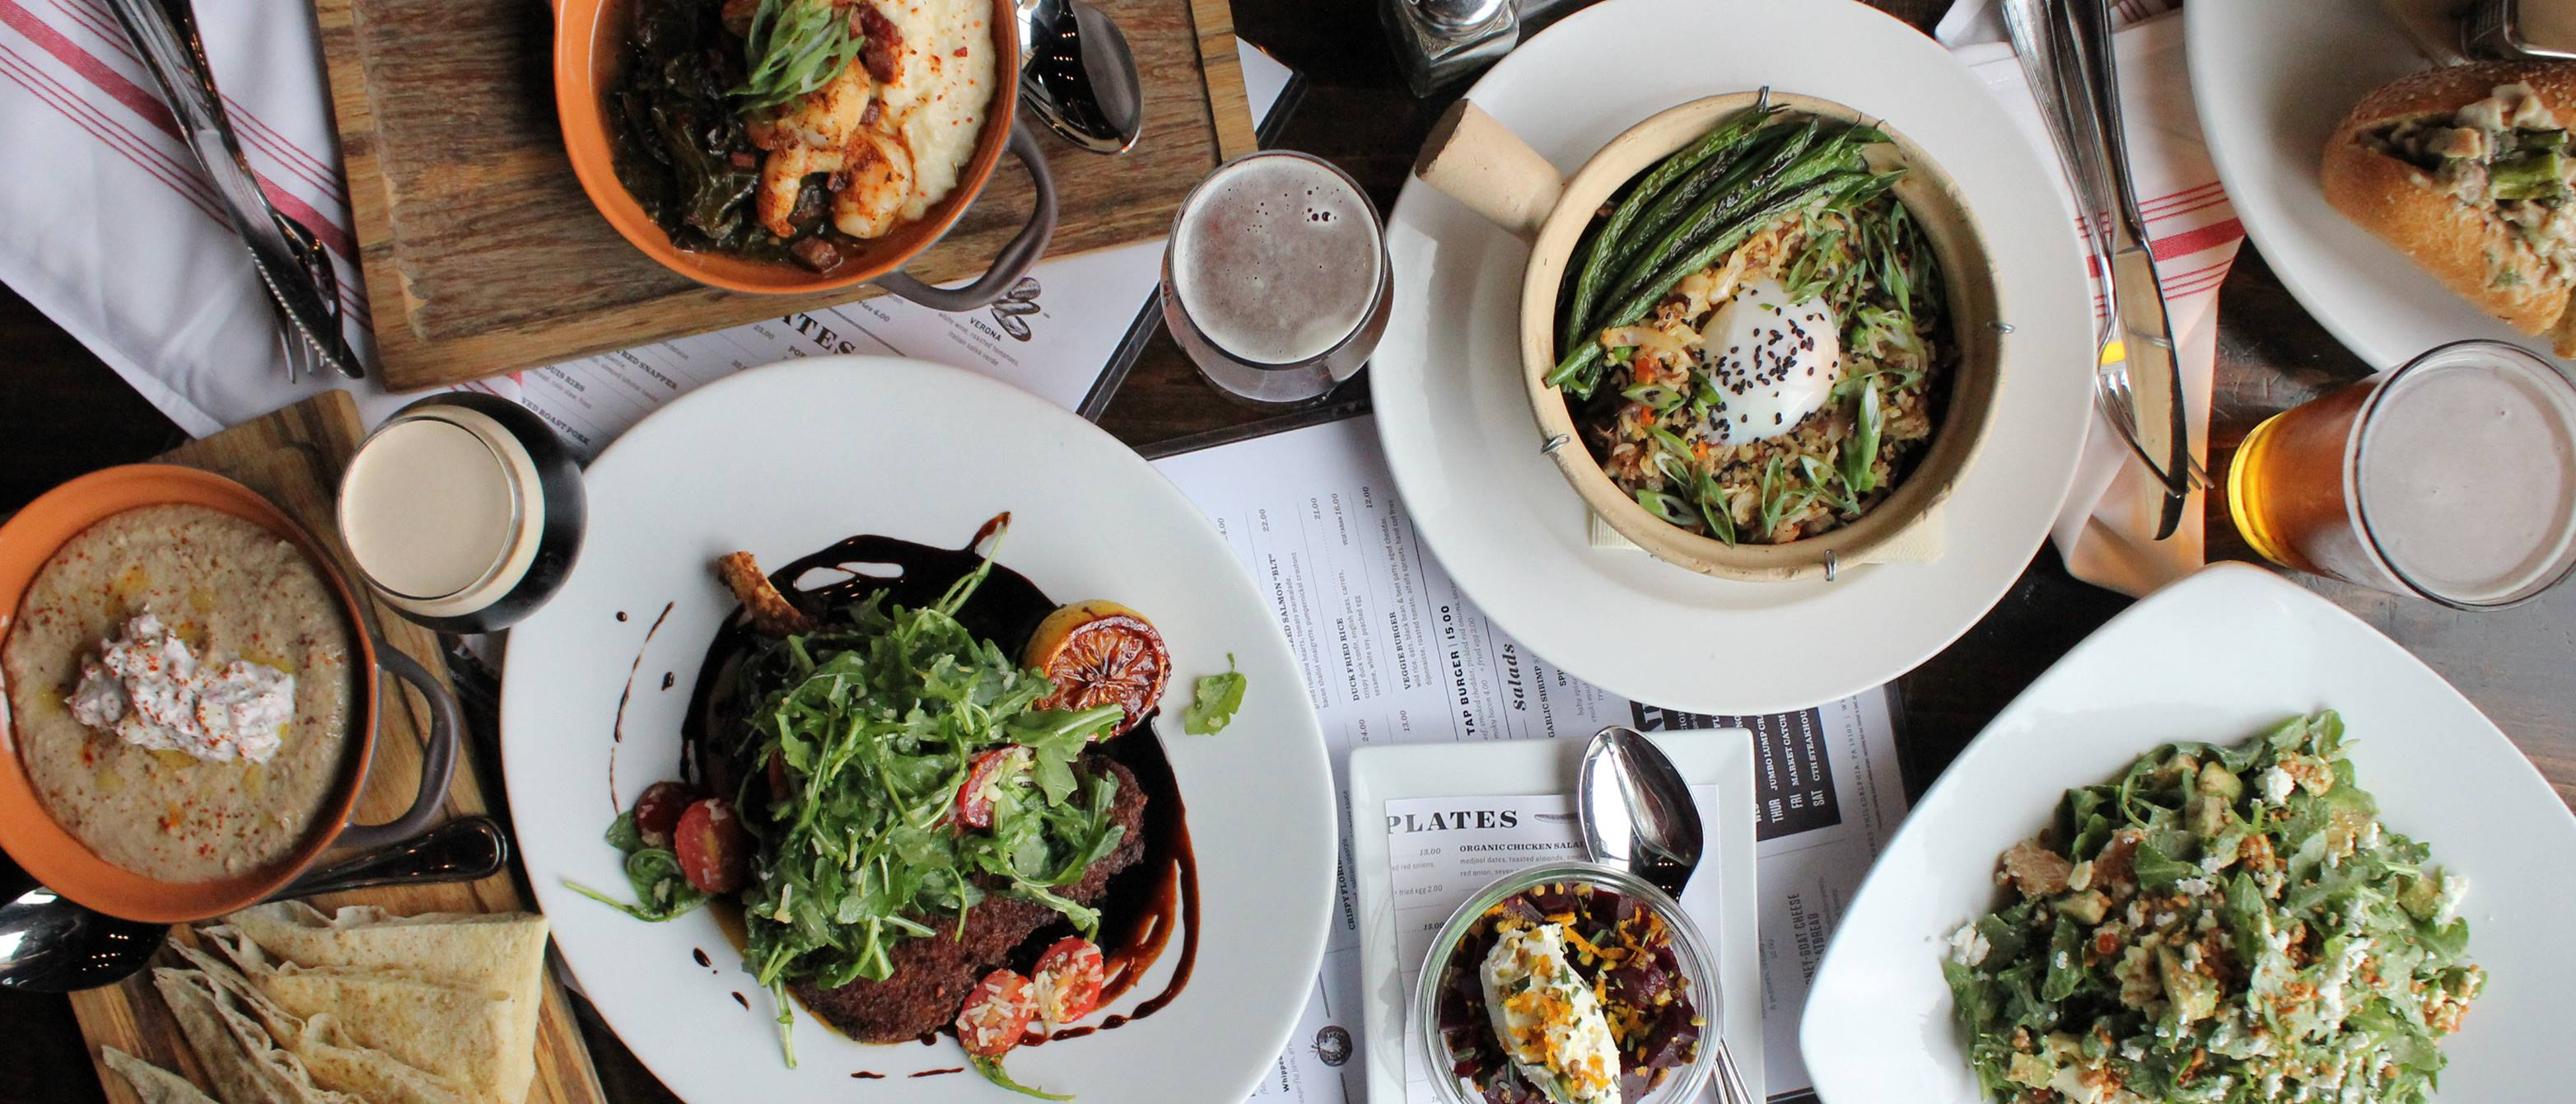 Local deli ships middle eastern fare to noma eater dc